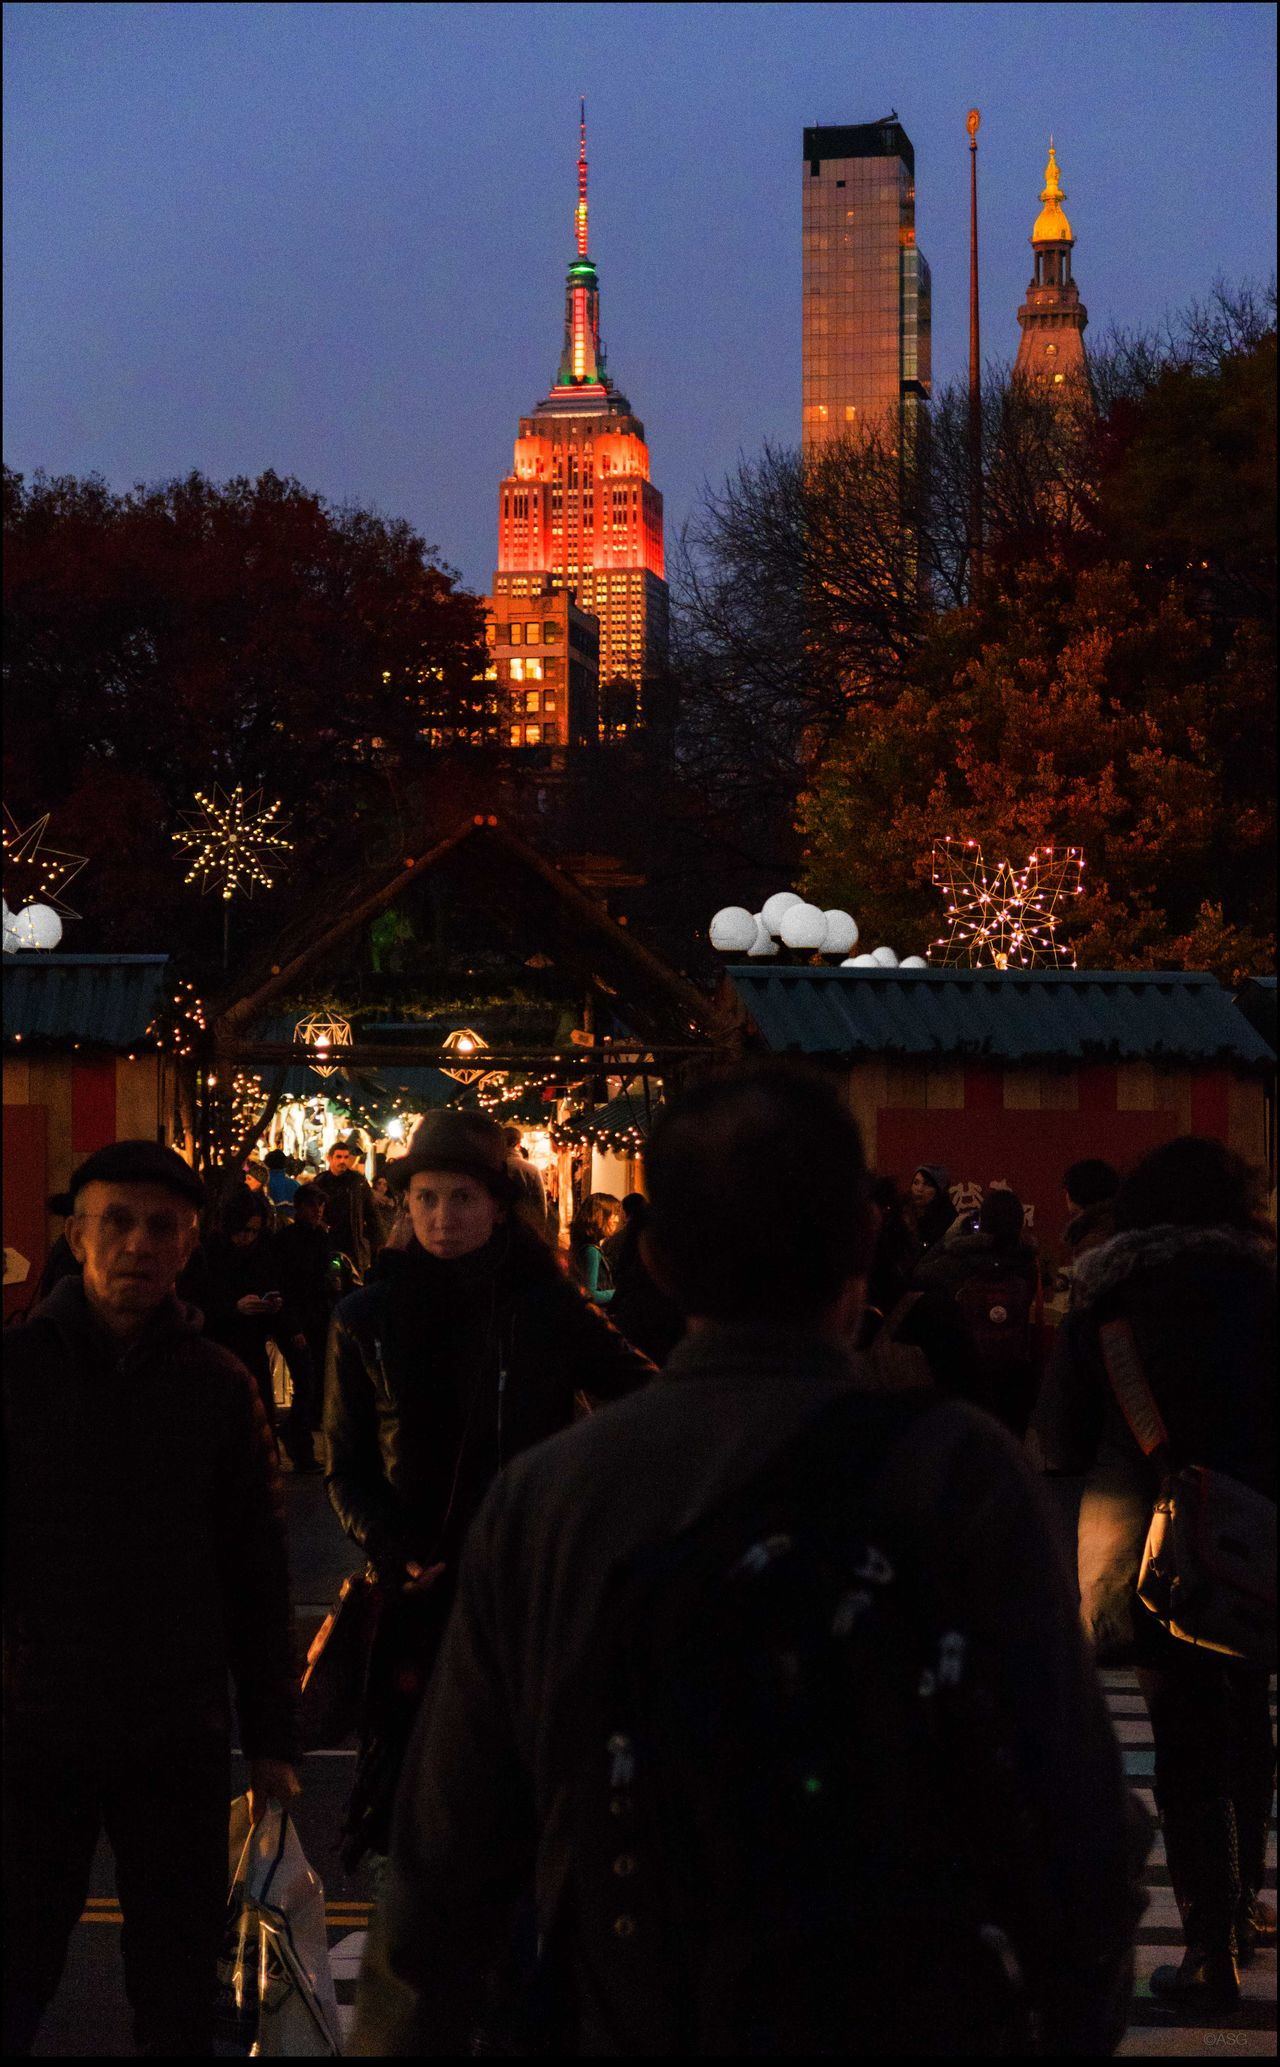 Thanksgiving EvE 11/25/15 Architecture City Life Crowd Empire State Bldg. International Landmark Large Group Of People Men Night Real People Union Sq., NYC Women